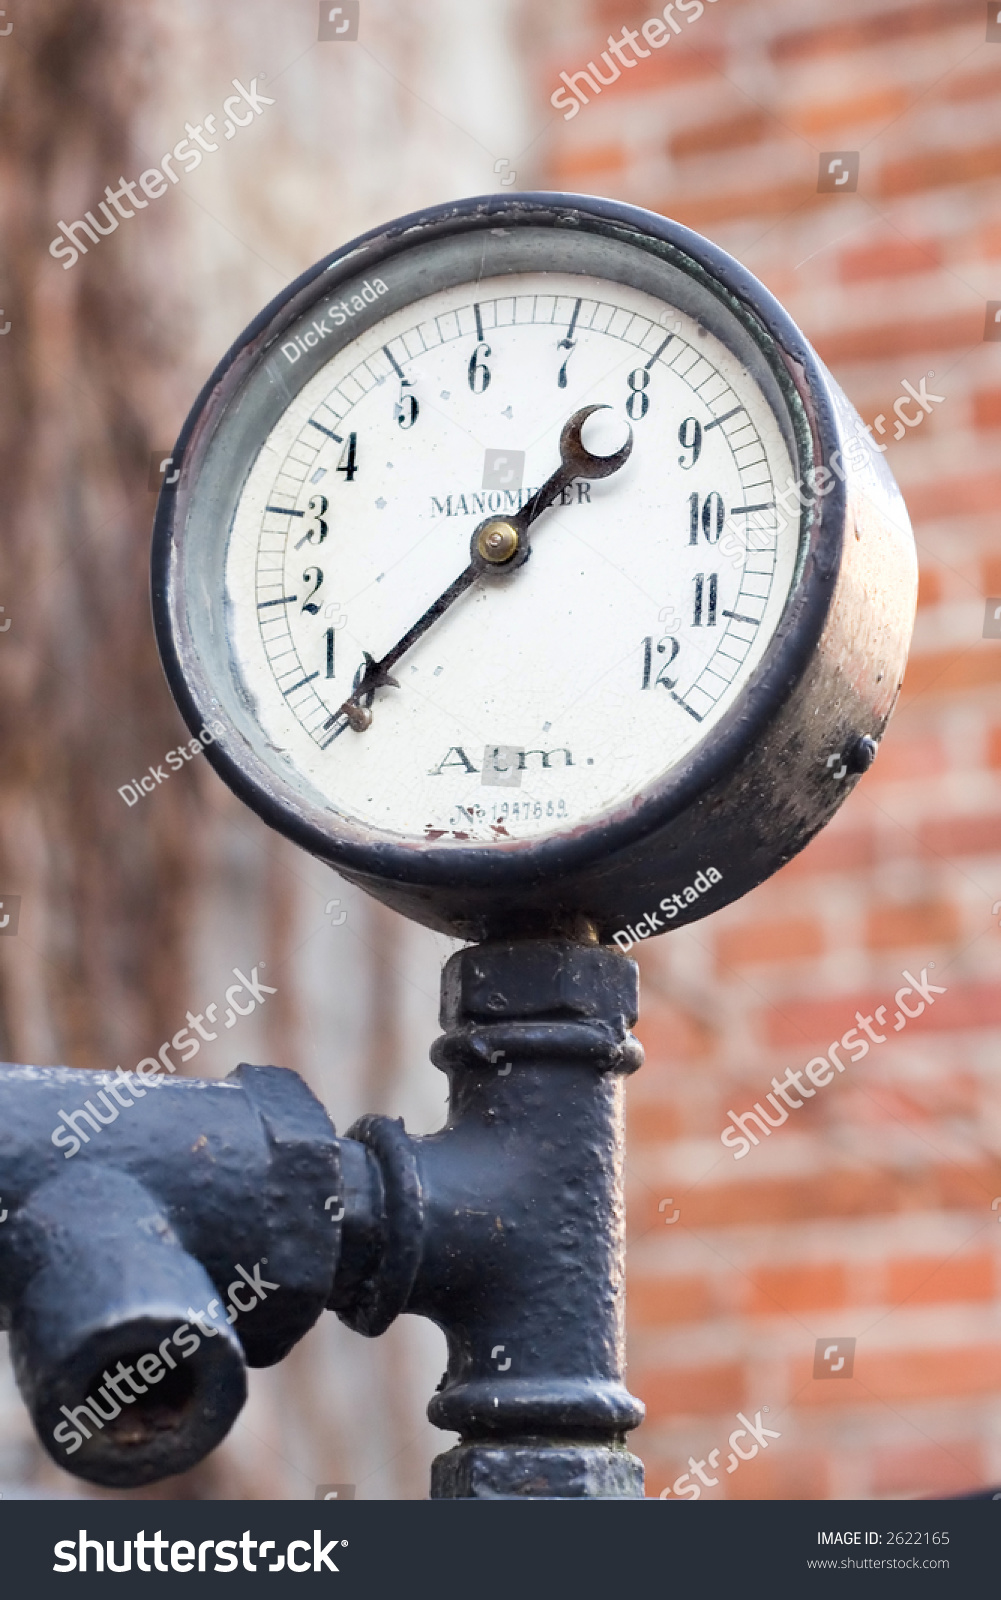 Old Manometer On Ship Motor Stock Photo 2622165 - Shutterstock